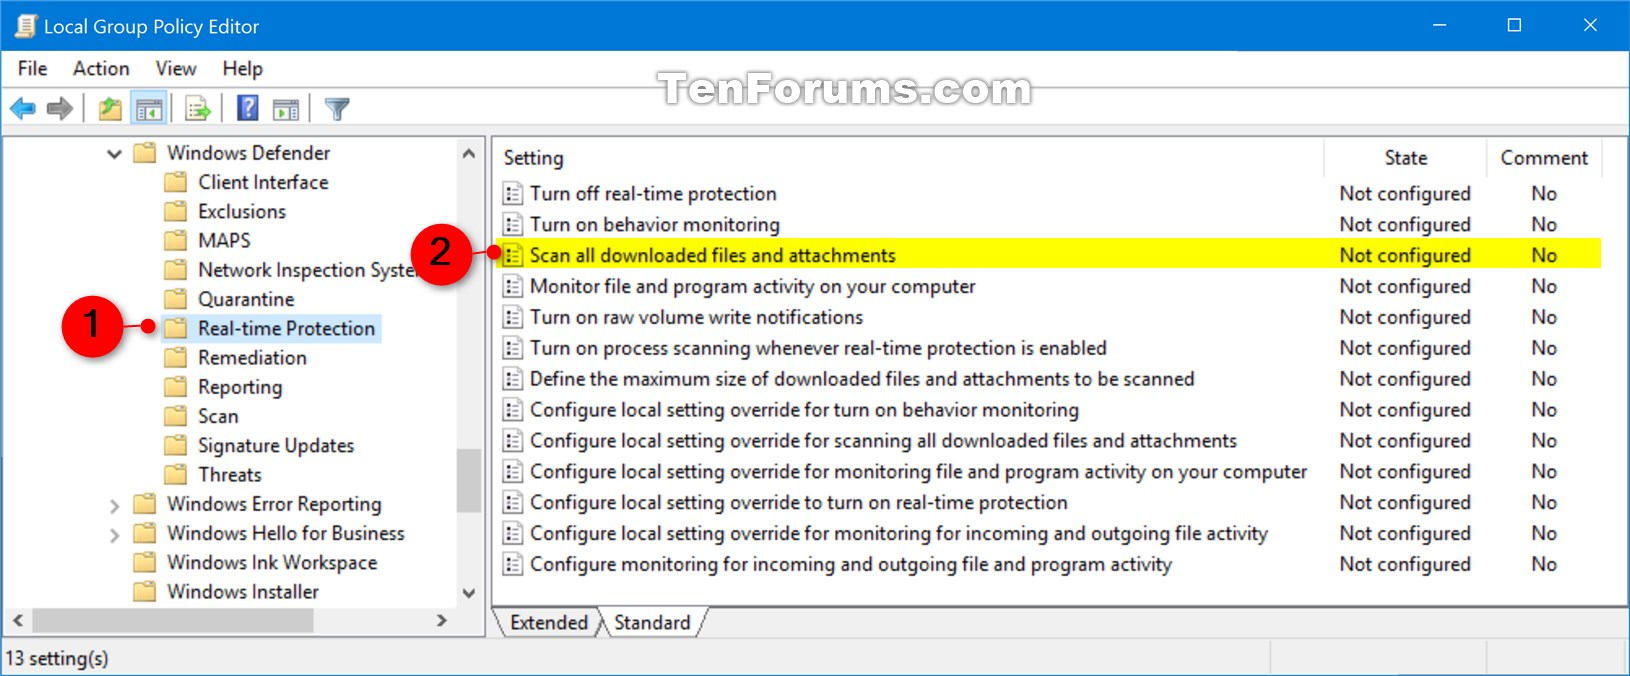 Enable Windows Defender Block at First Sight in Windows 10 | Tutorials